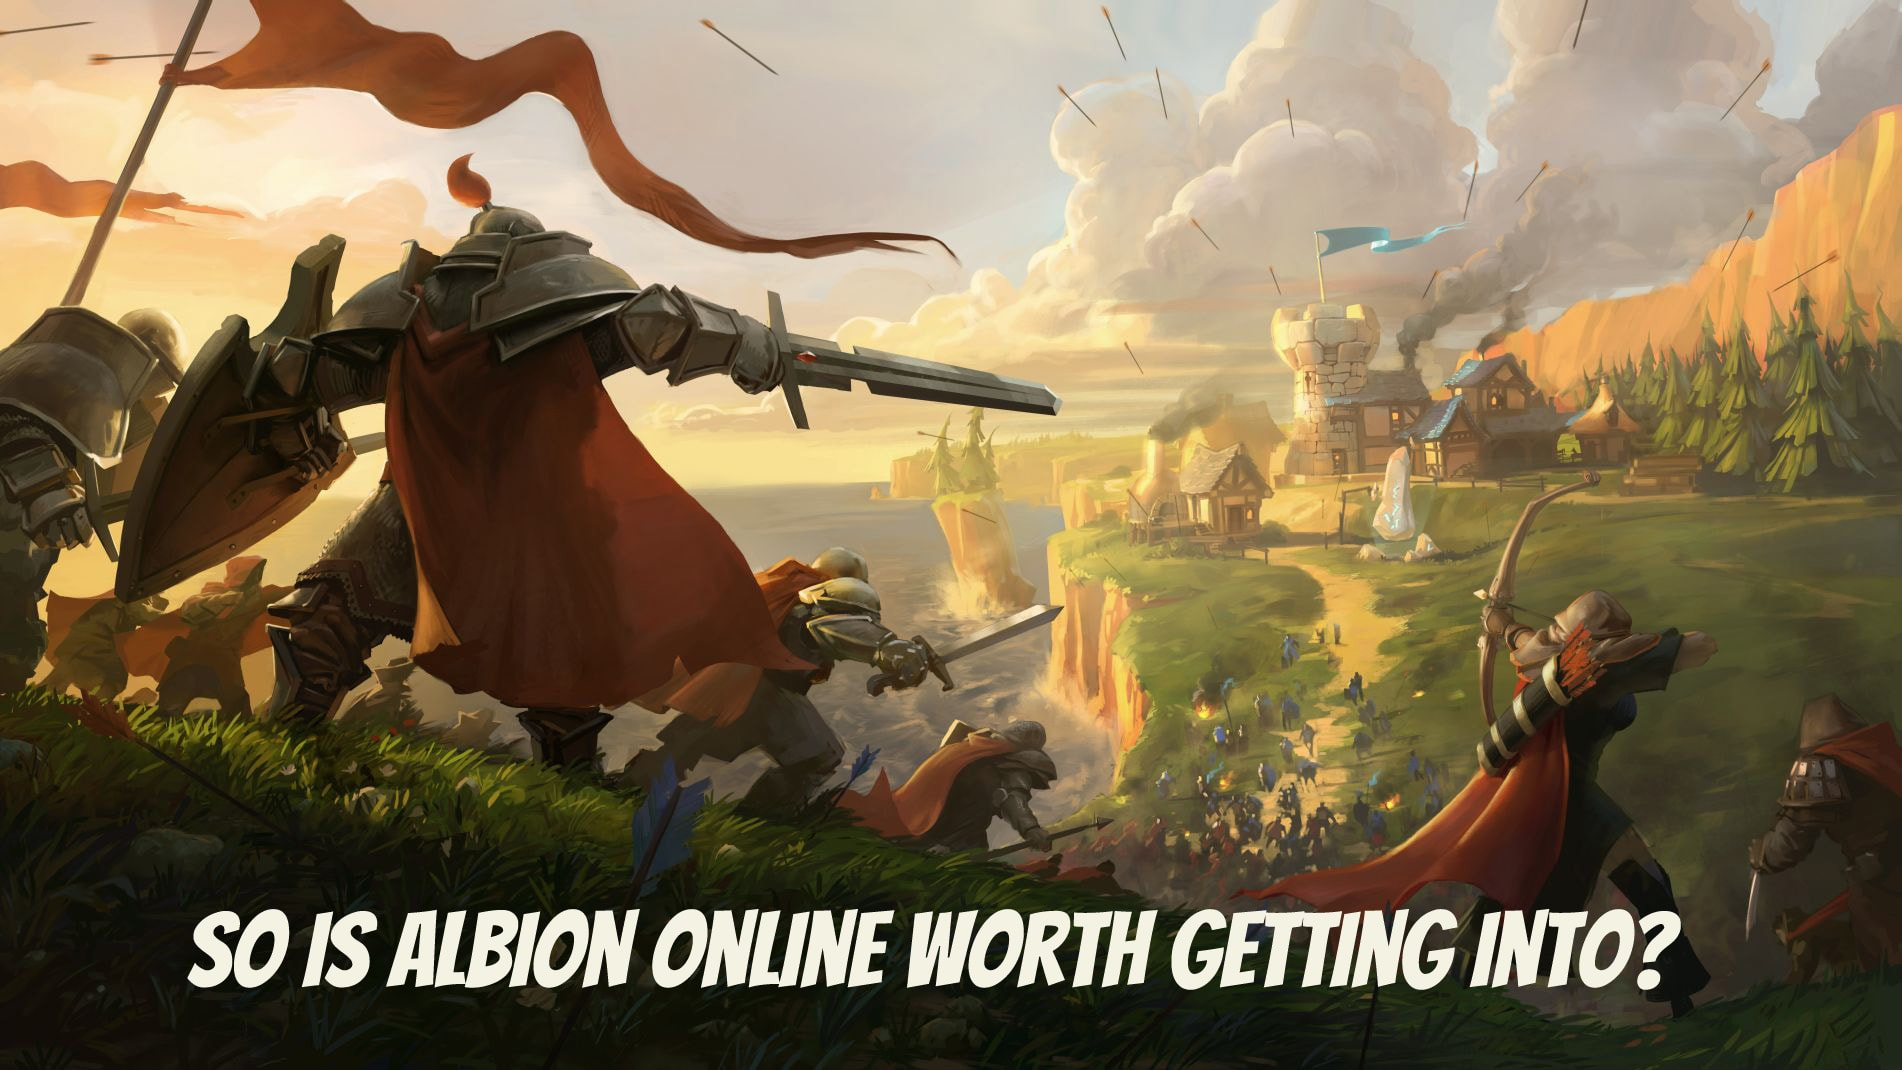 So Is Albion Online Worth Getting Into?